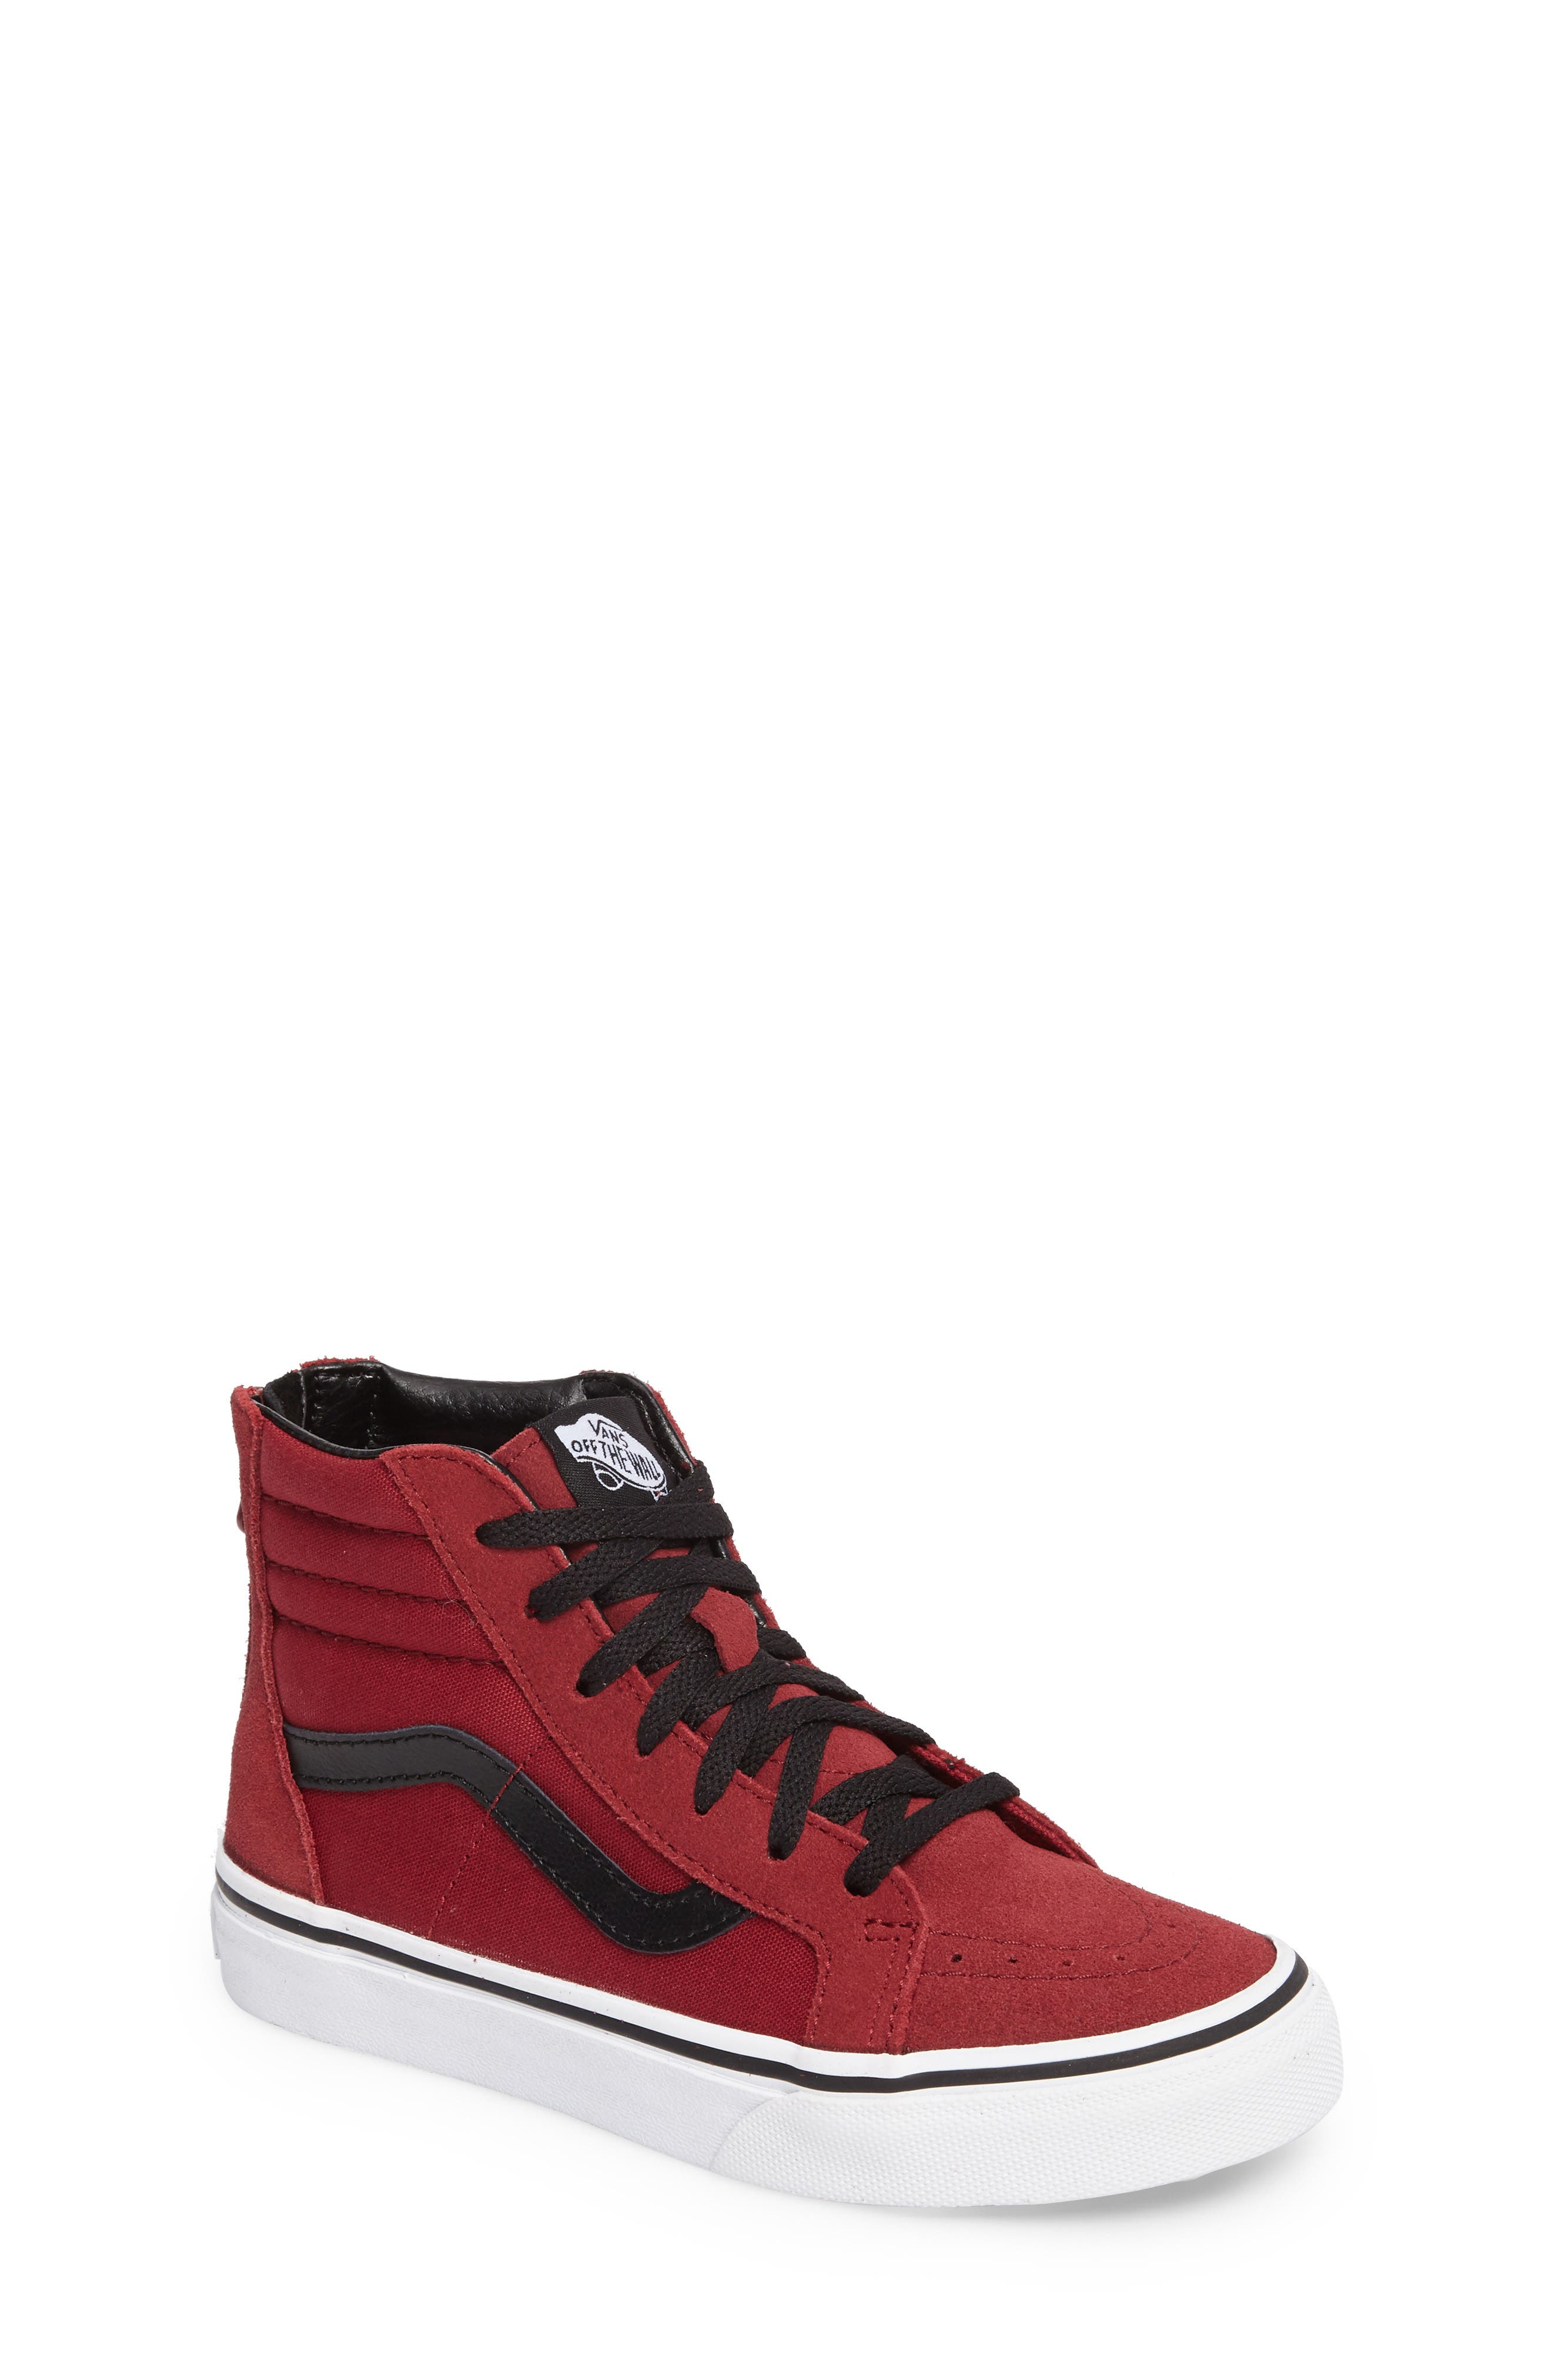 SK8-Hi Zip Sneaker,                             Main thumbnail 1, color,                             TIBETAN RED/ BLACK